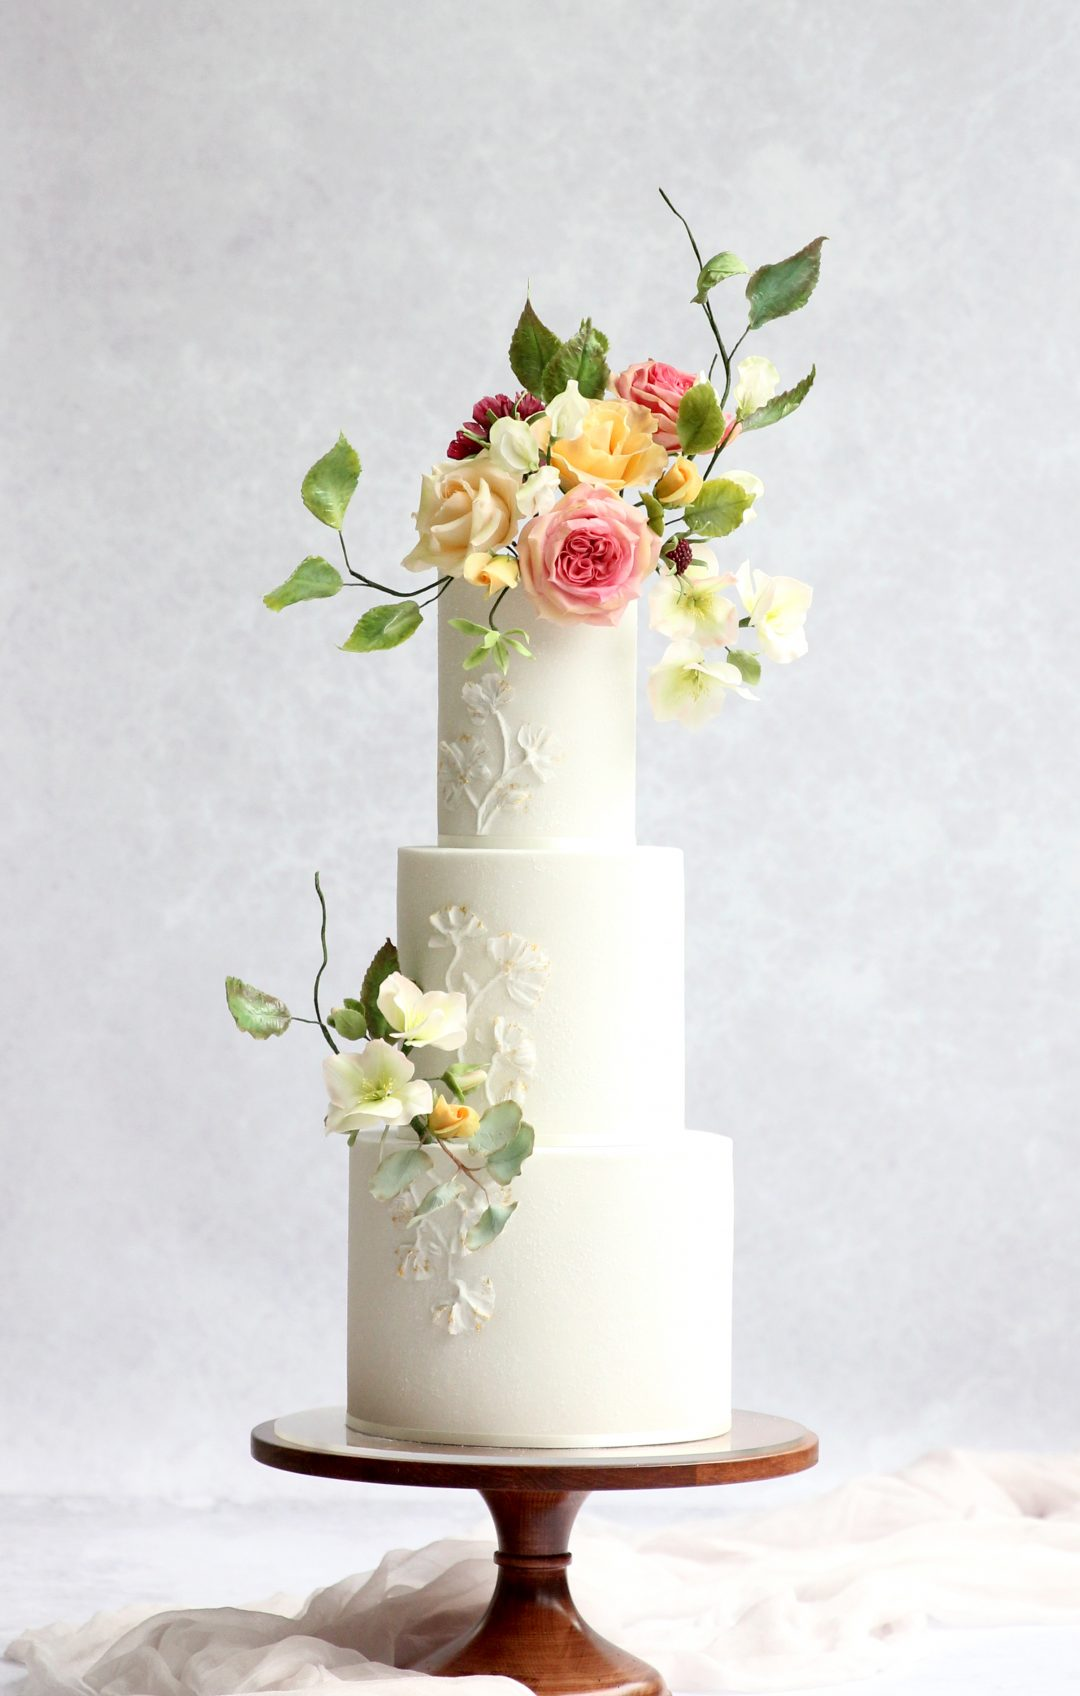 Floral - Flowers have always been a traditional adornment of wedding cakes and 2019 will be no exception.